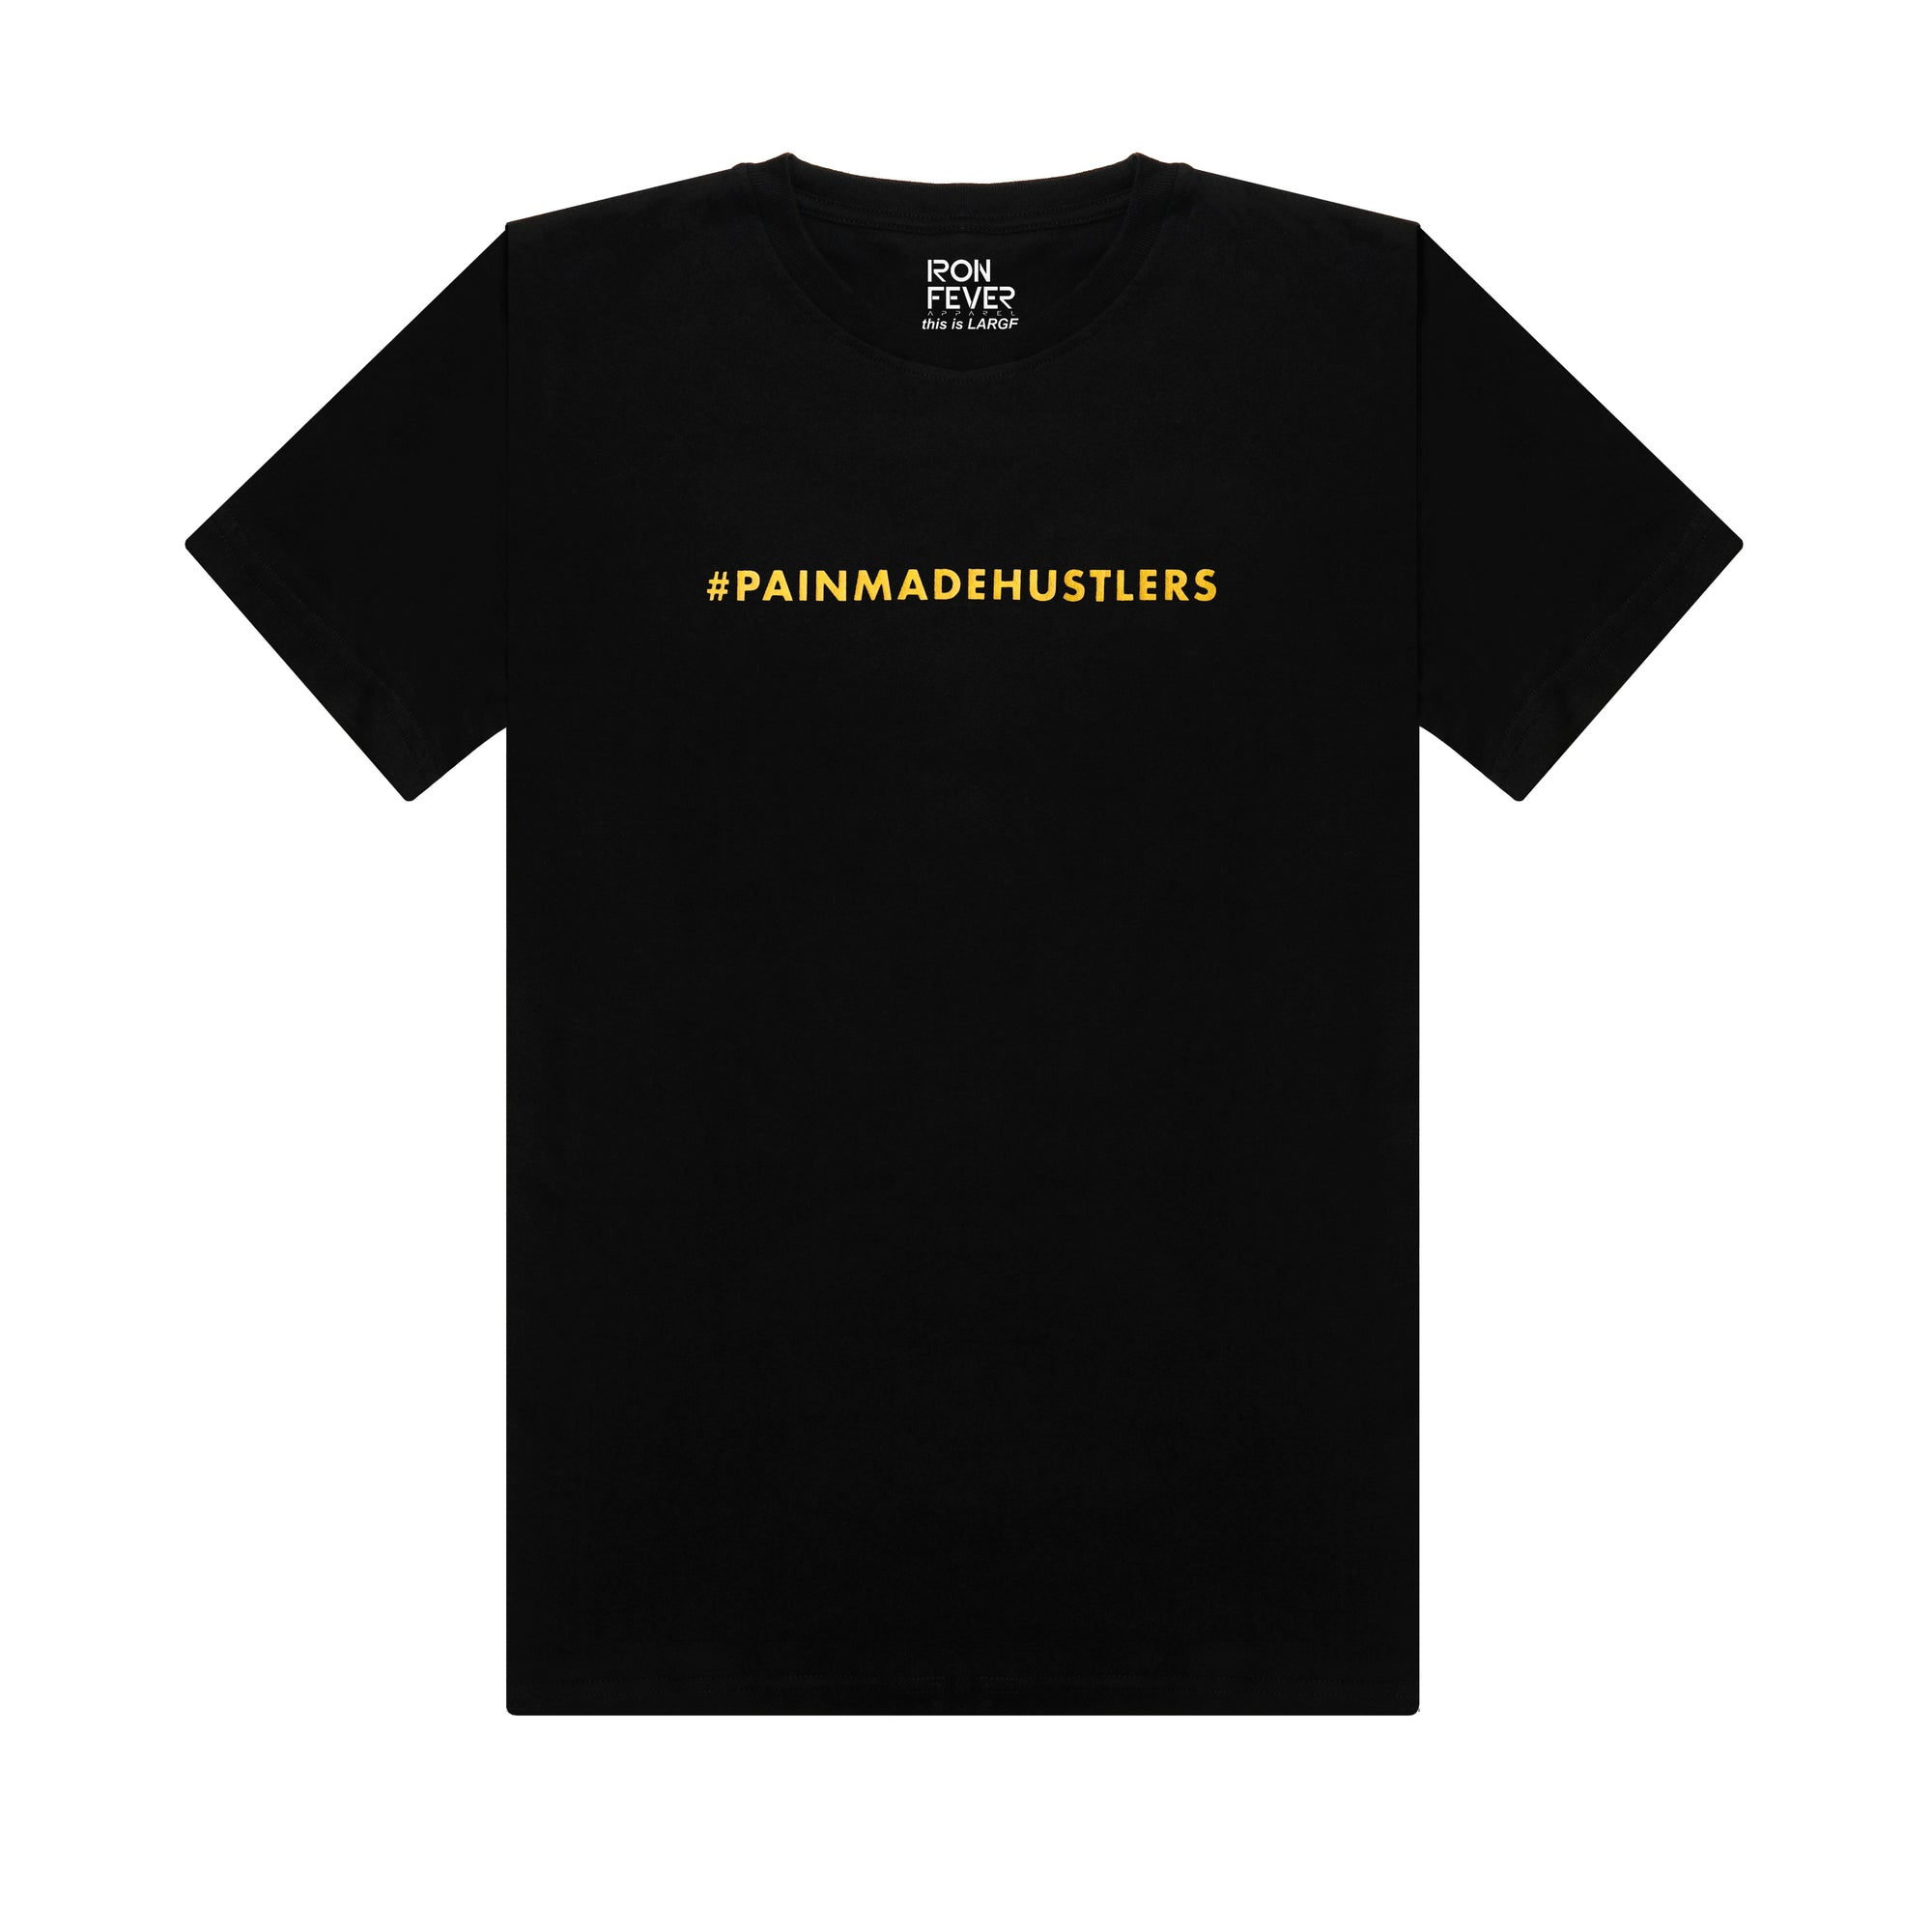 #PAINMADEHUSTLERS - Black/ Metallic Gold